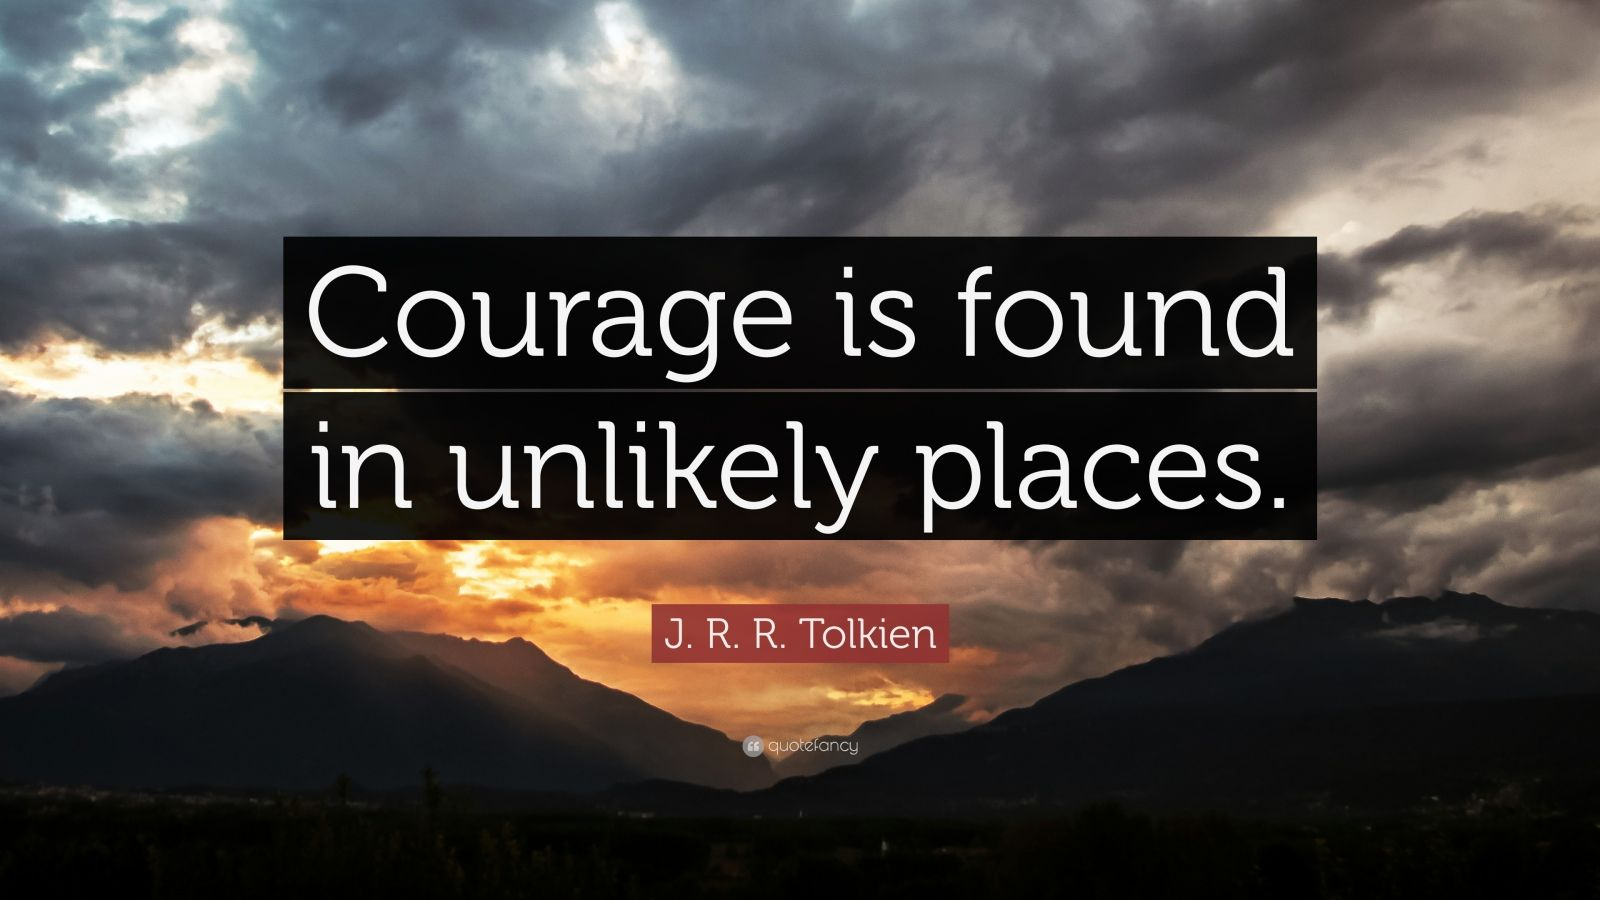 """J. R. R. Tolkien Quote: """"Courage is found in unlikely places."""""""